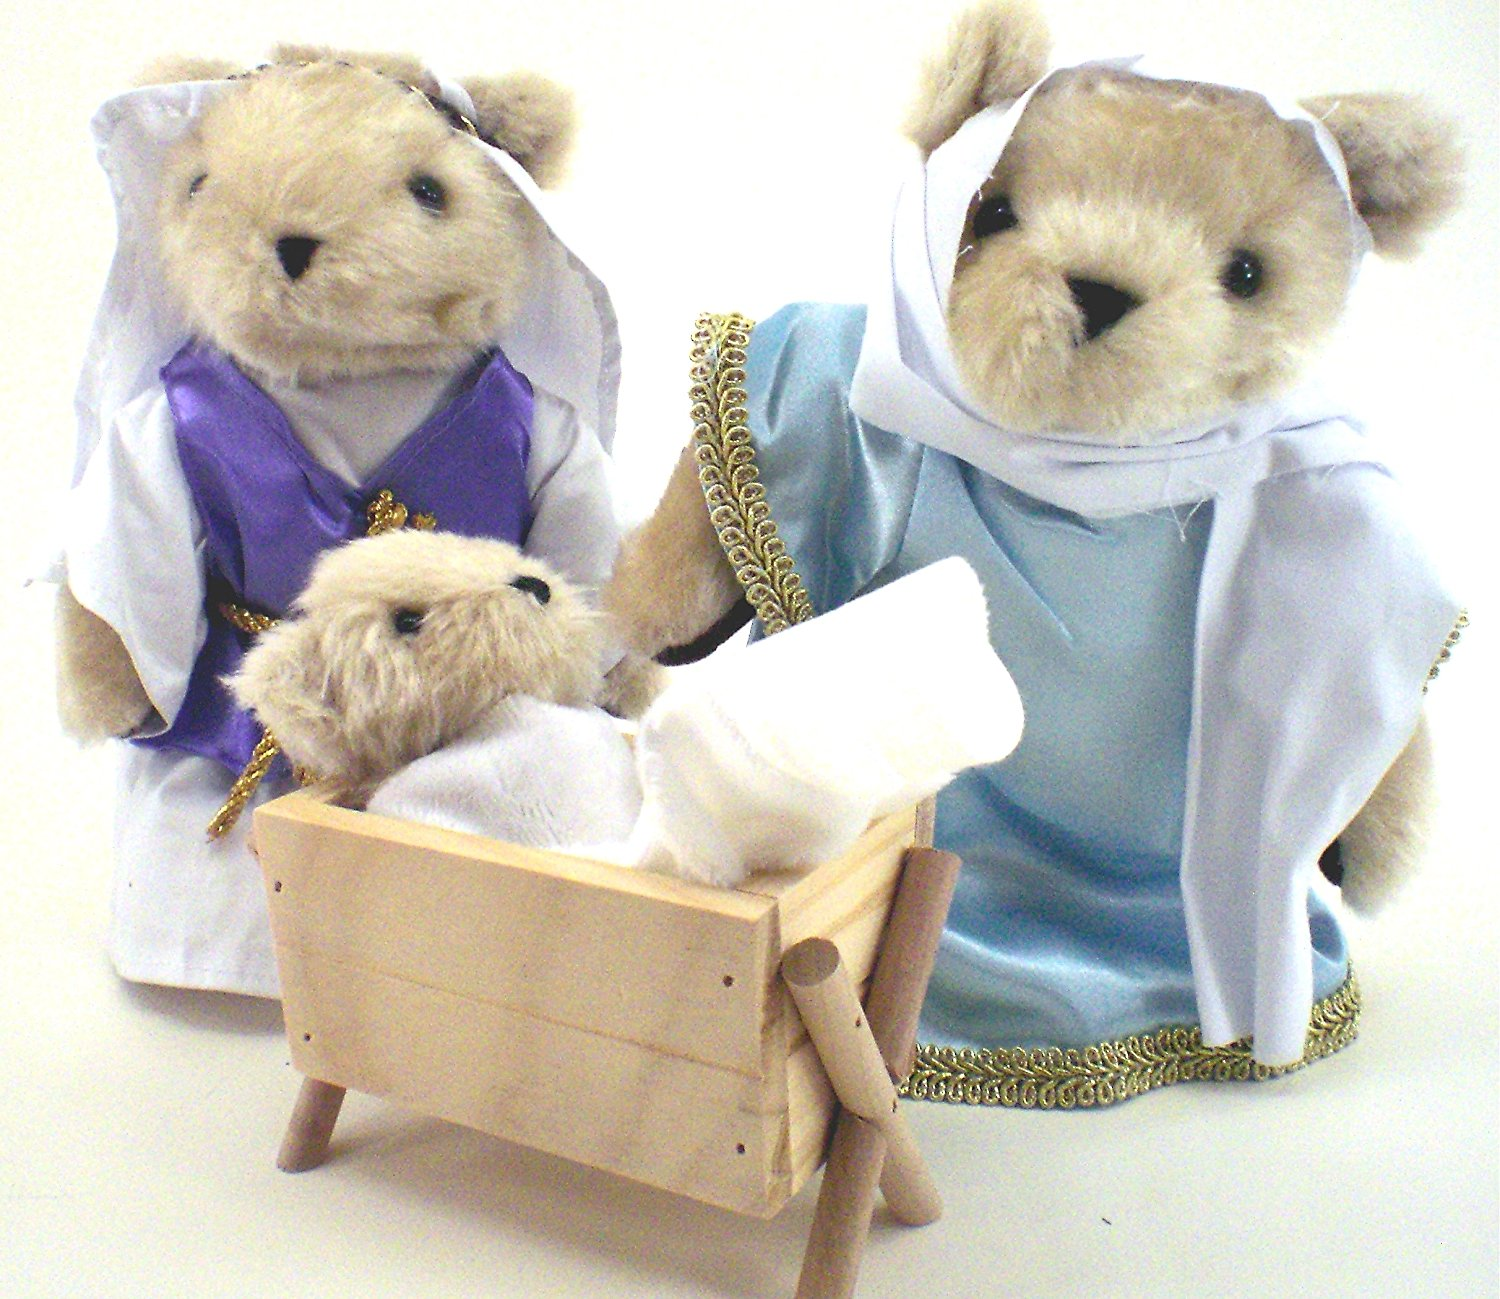 A Teddy Bear Christmas Nativity Set, Joseph, Mary And Baby Jesus In Manger by DENTT